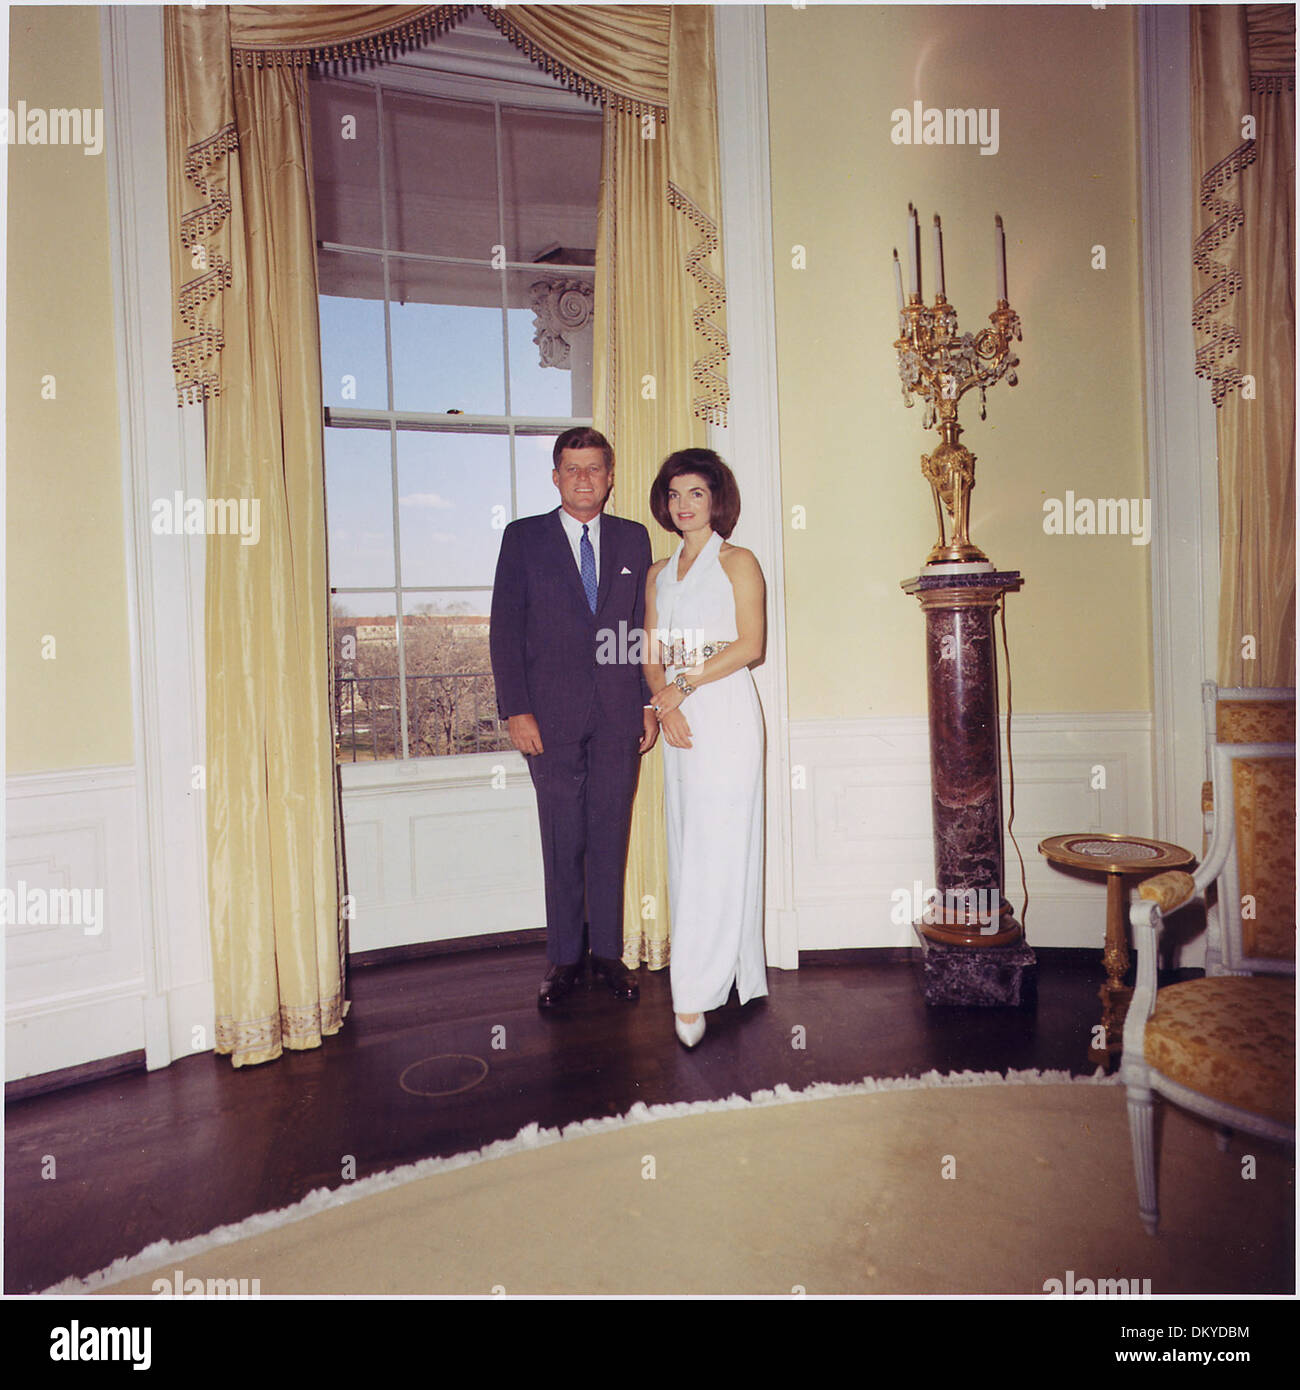 President and First Lady, Portrait Photograph. President Kennedy, Mrs. Kennedy. White House, Yellow Oval Room. 194262 - Stock Image